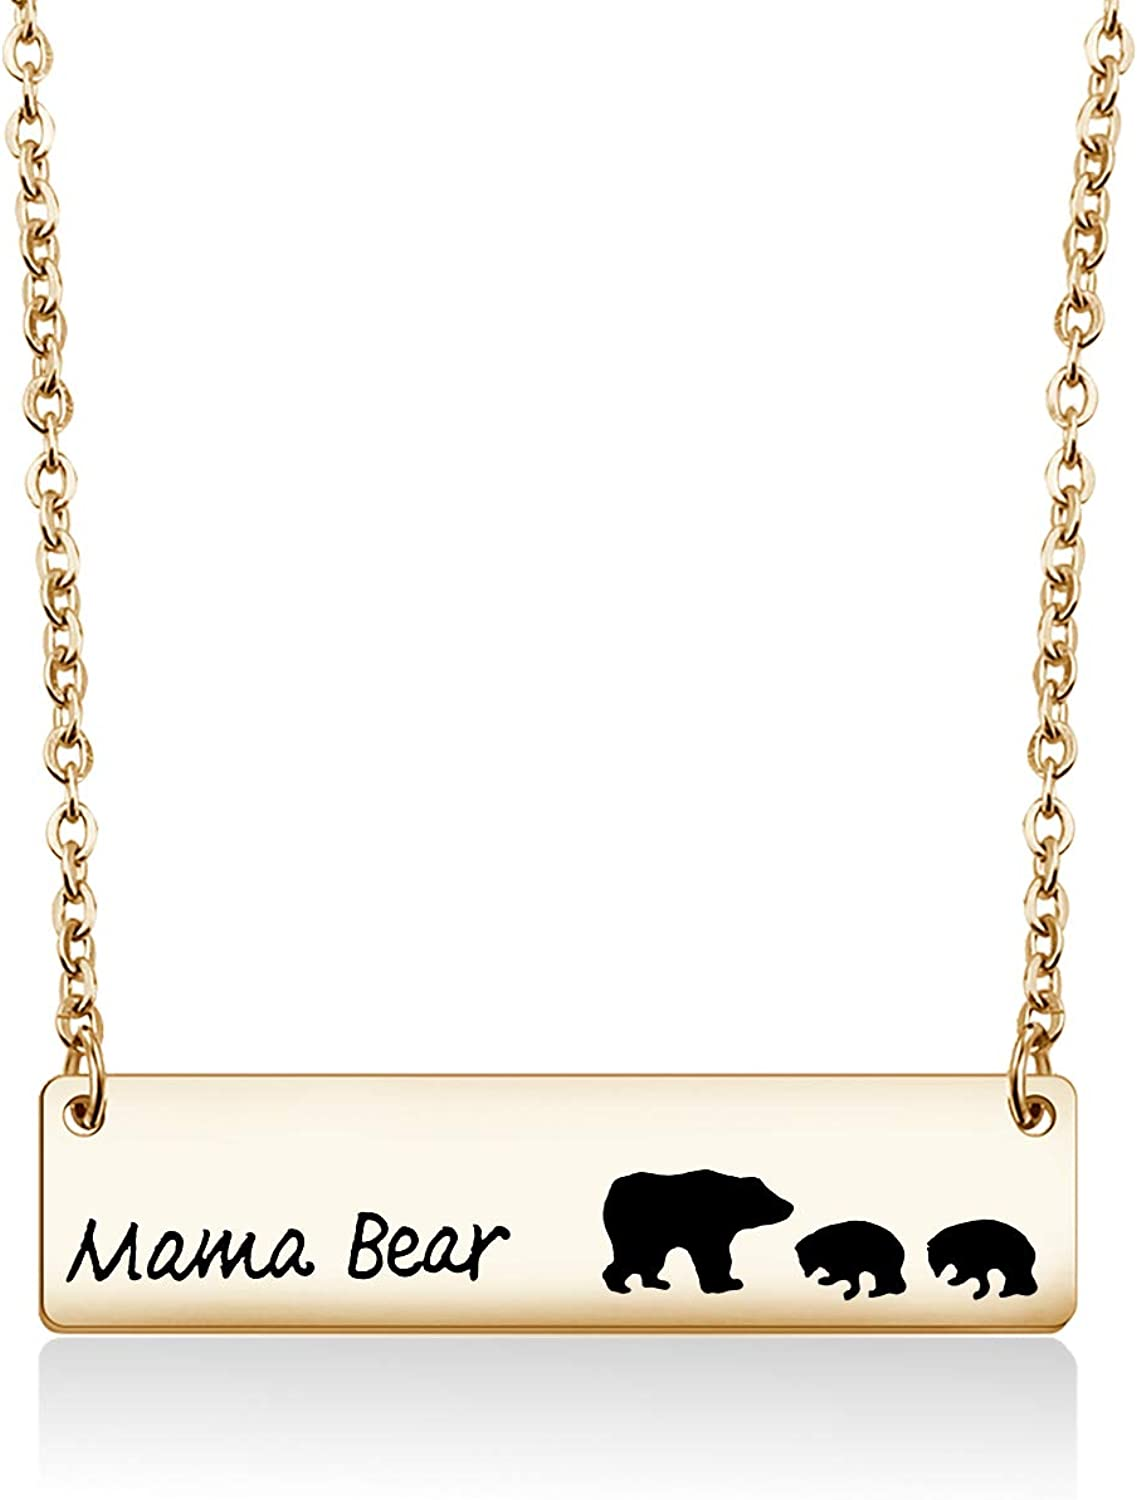 Zuo Bao Sweet Mama Bear Bar Necklace Mother Necklace Mama Bear Jewelry for New Mom